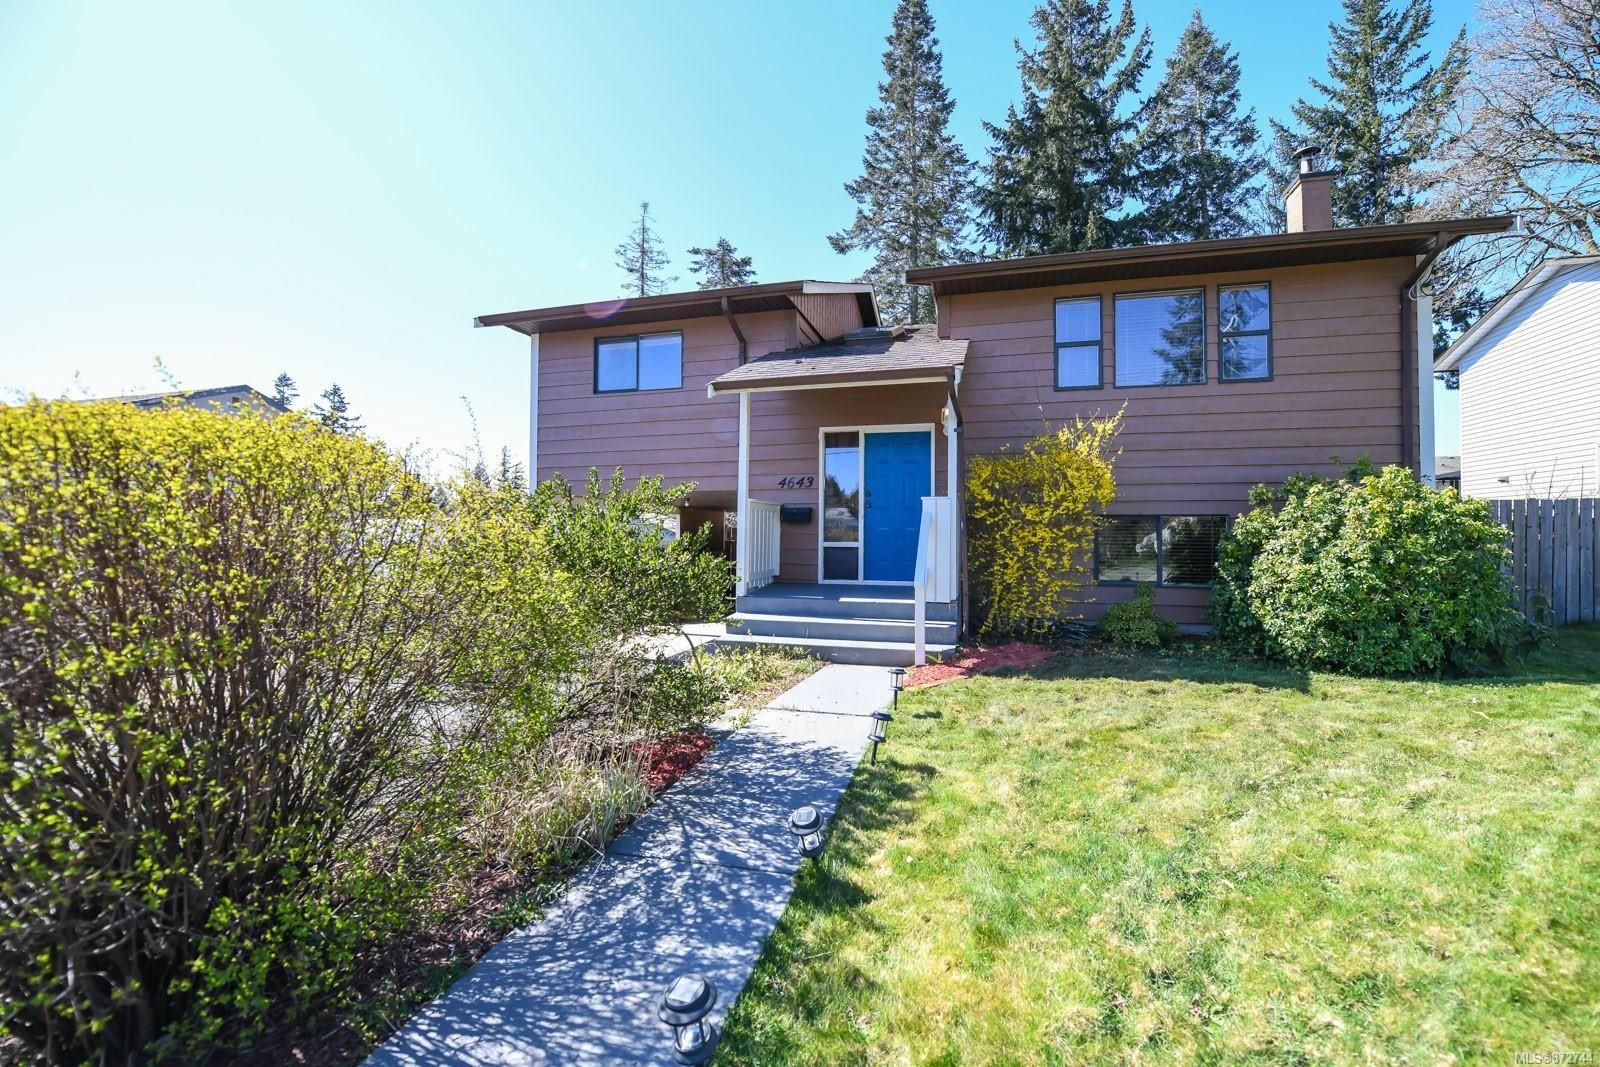 Main Photo: 4643 Macintyre Ave in : CV Courtenay East House for sale (Comox Valley)  : MLS®# 872744